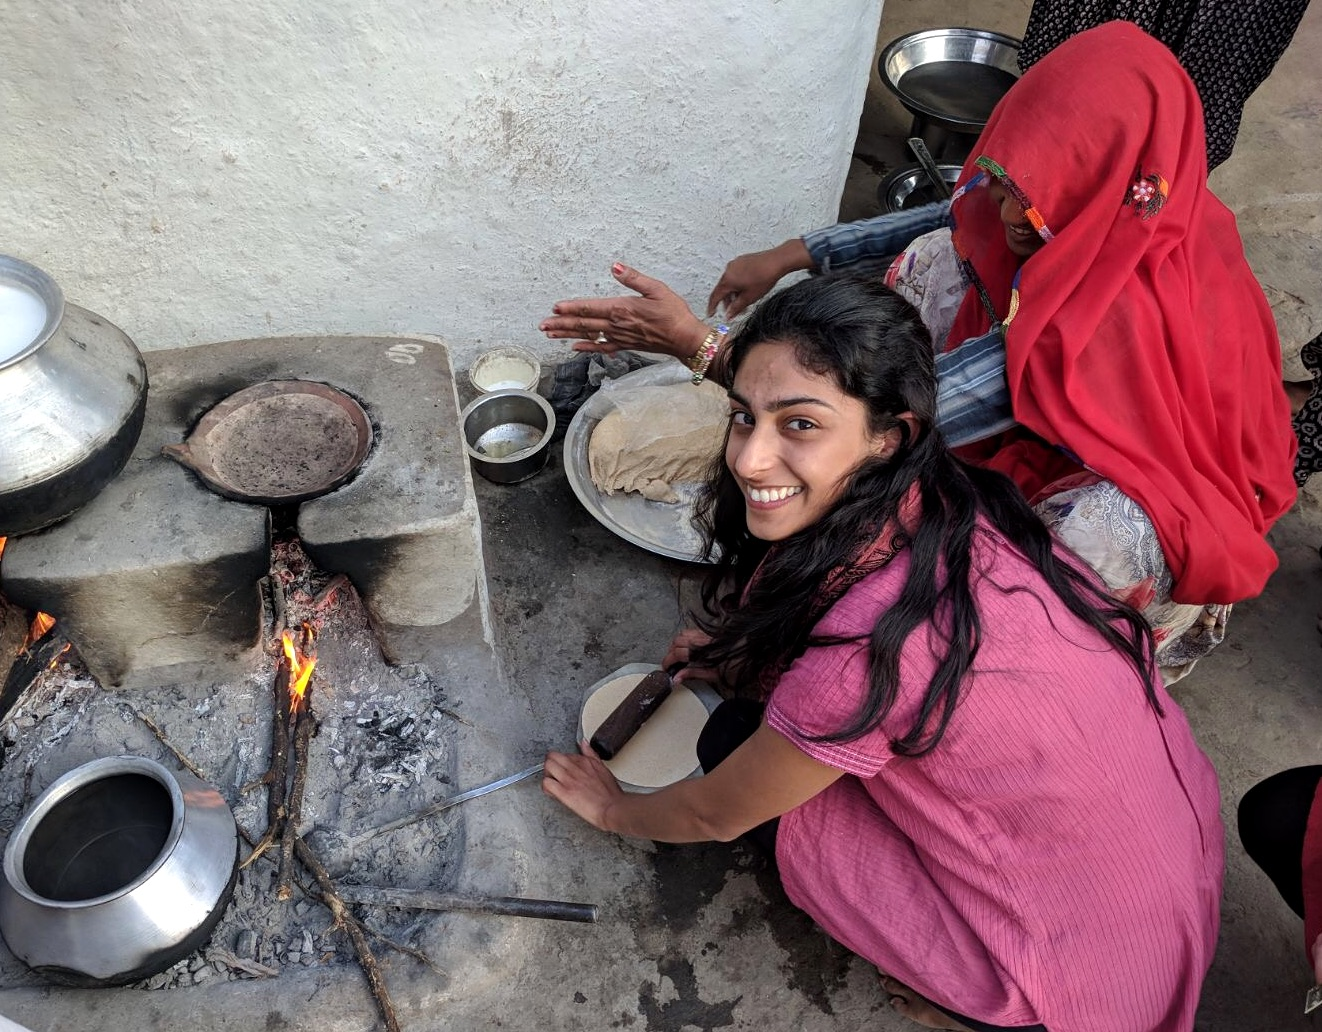 Getting involved with daily chores, cooking the traditional bread for our household. It's more difficult than it looks!